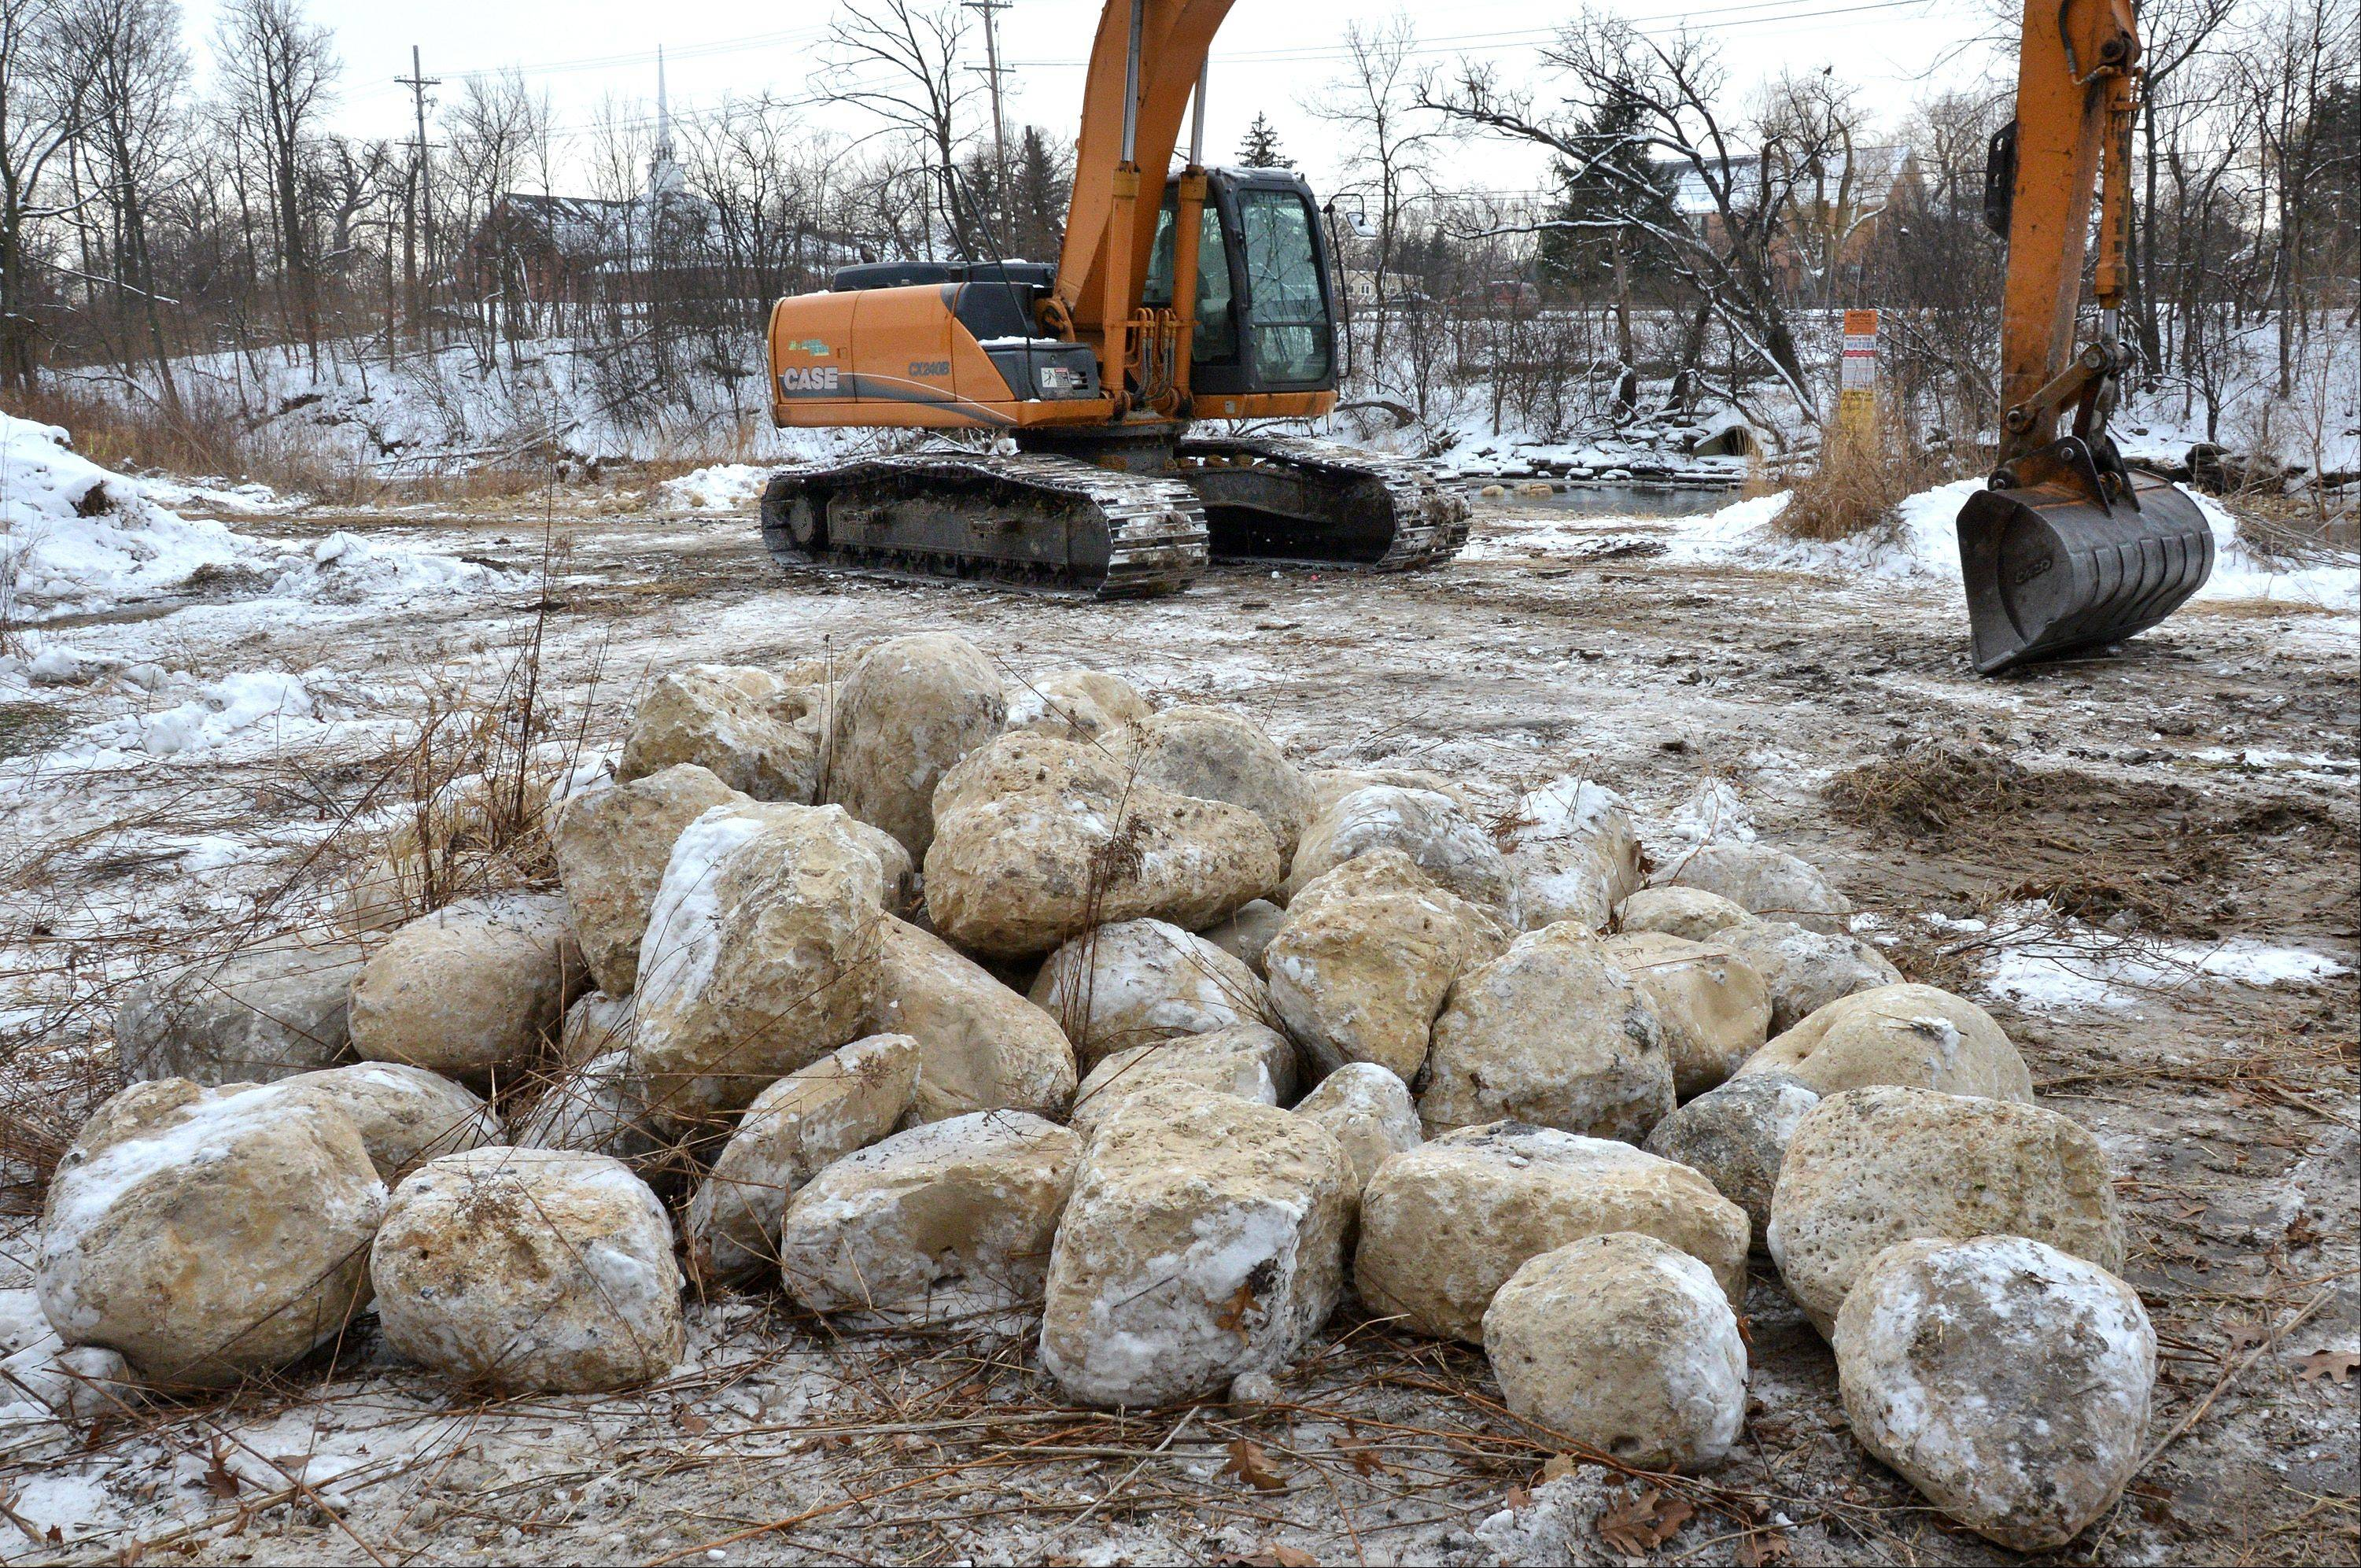 Rocks are being used to create riffles along the West Branch of the DuPage River at McDowell Grove Forest Preserve near Naperville.